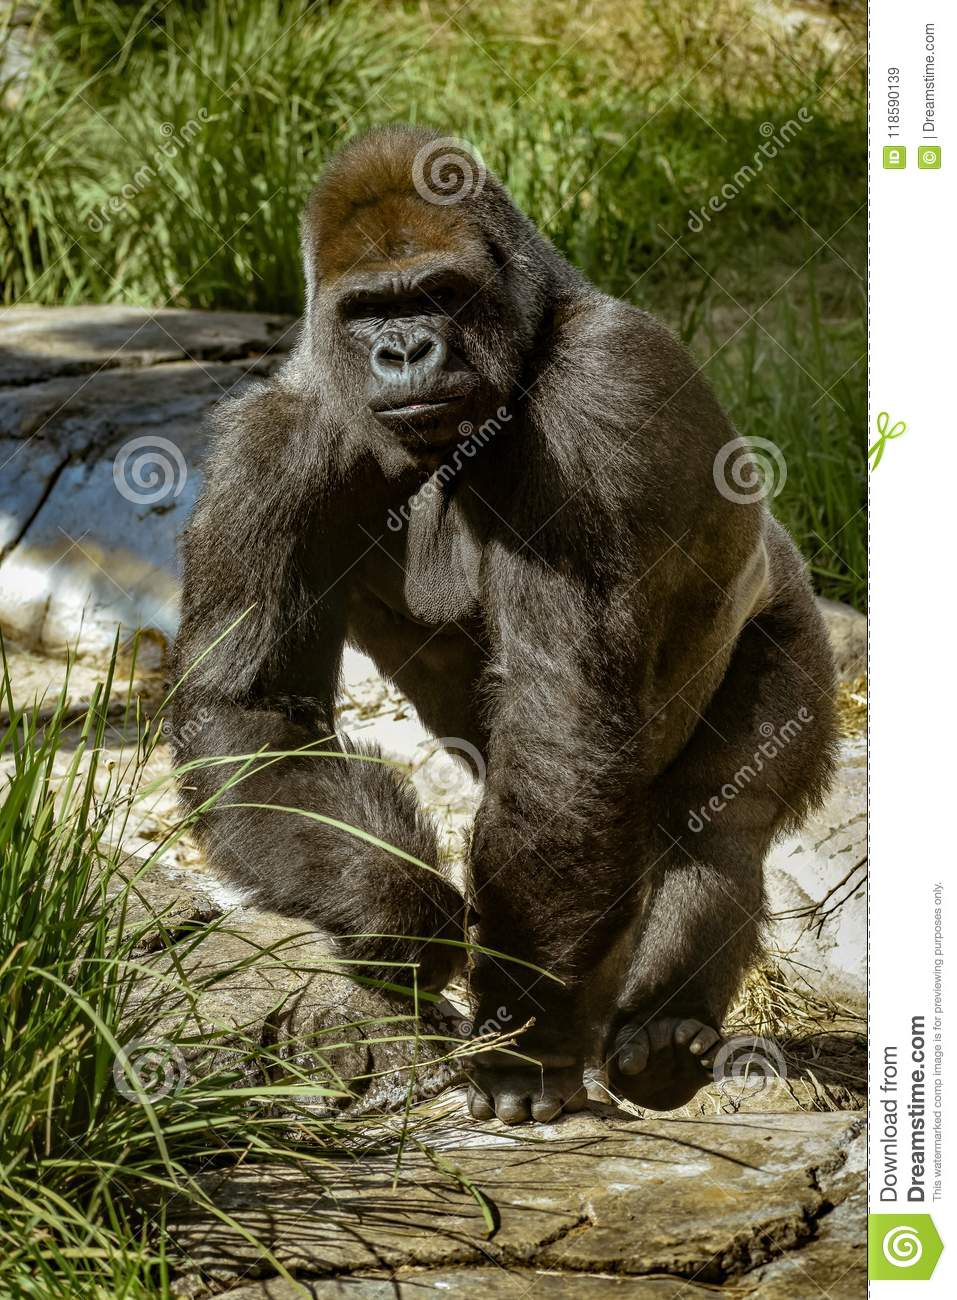 A large gorilla walking on his knuckles